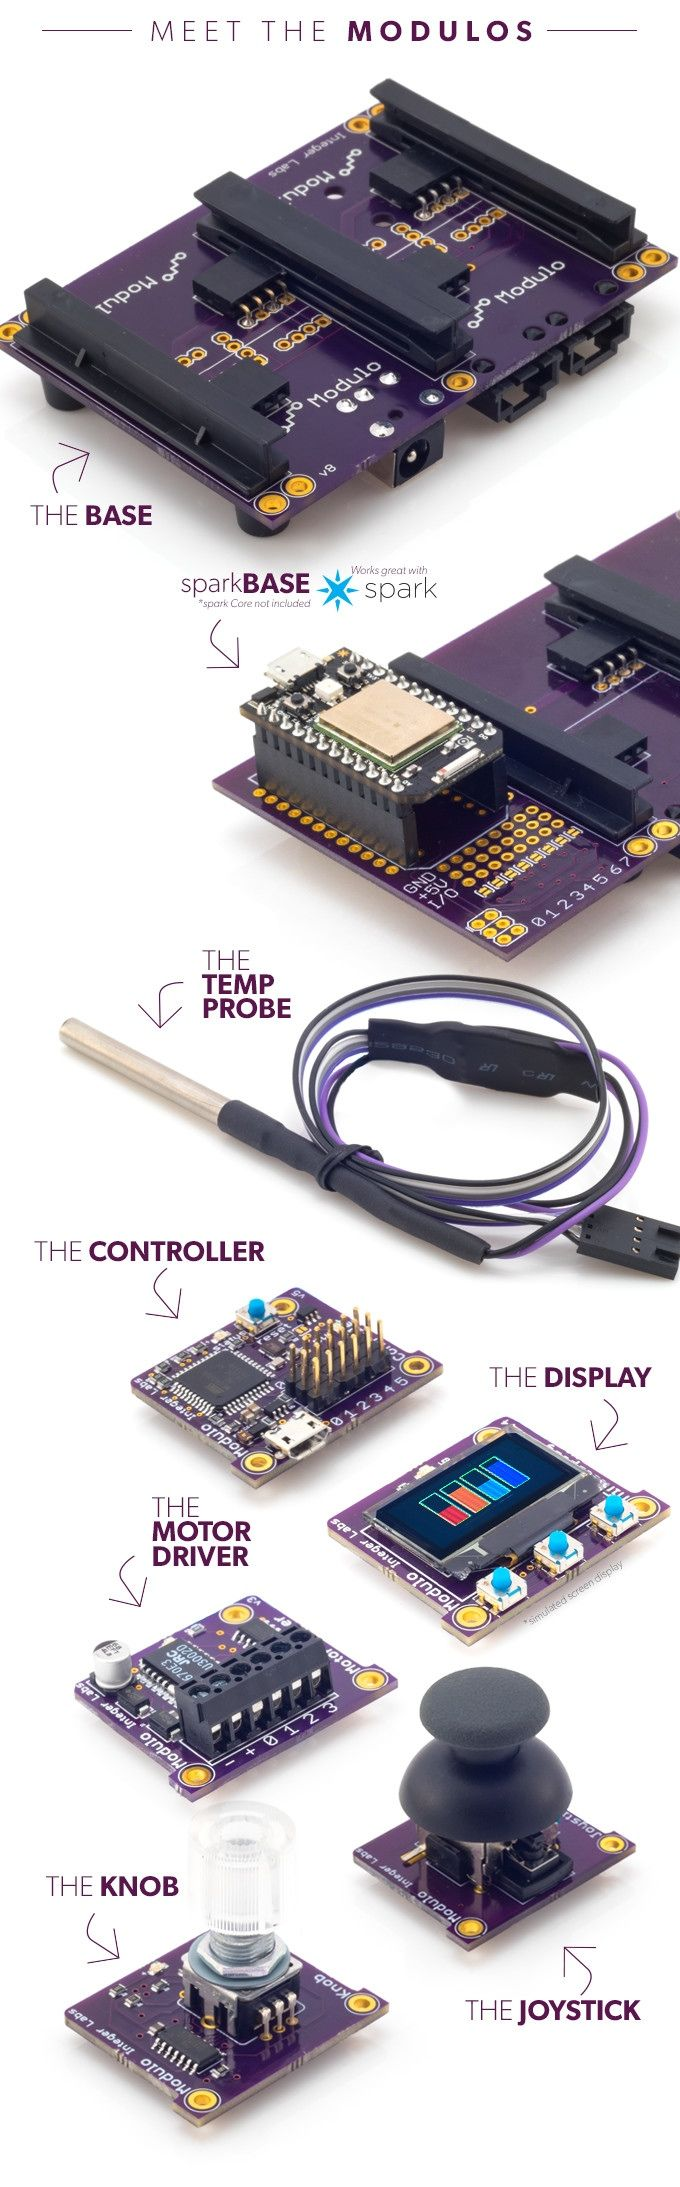 103 Best Make Images On Pinterest Diy Electronics Arduino A Circuit Board Fly With This Cute Tiny Quadcopter Kit Modulo Simple Modular Solution For Building By Labs Llc